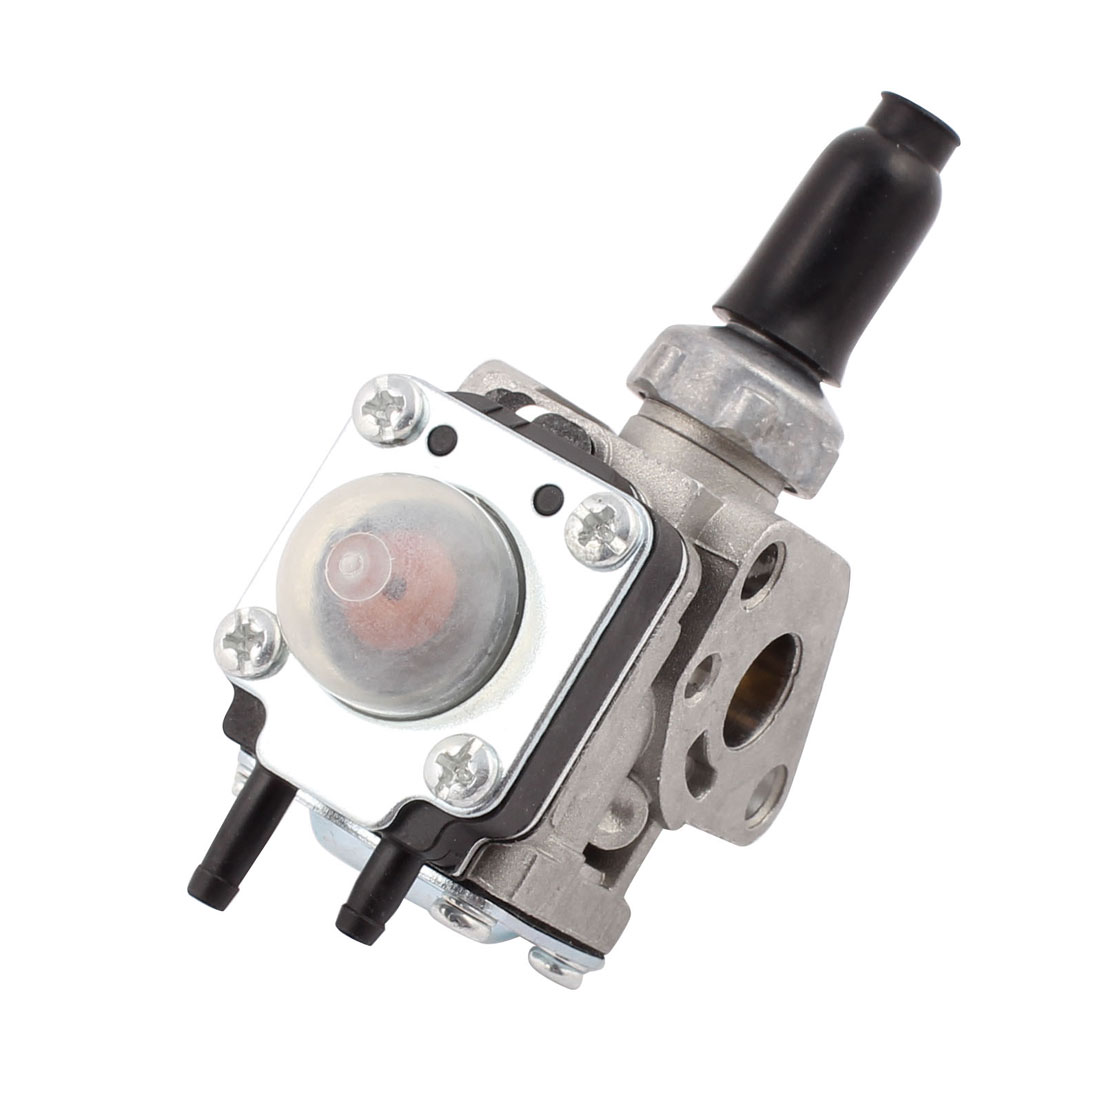 New Carburetor Chainsaw Parts Lawn Mower for TH43 for TH48